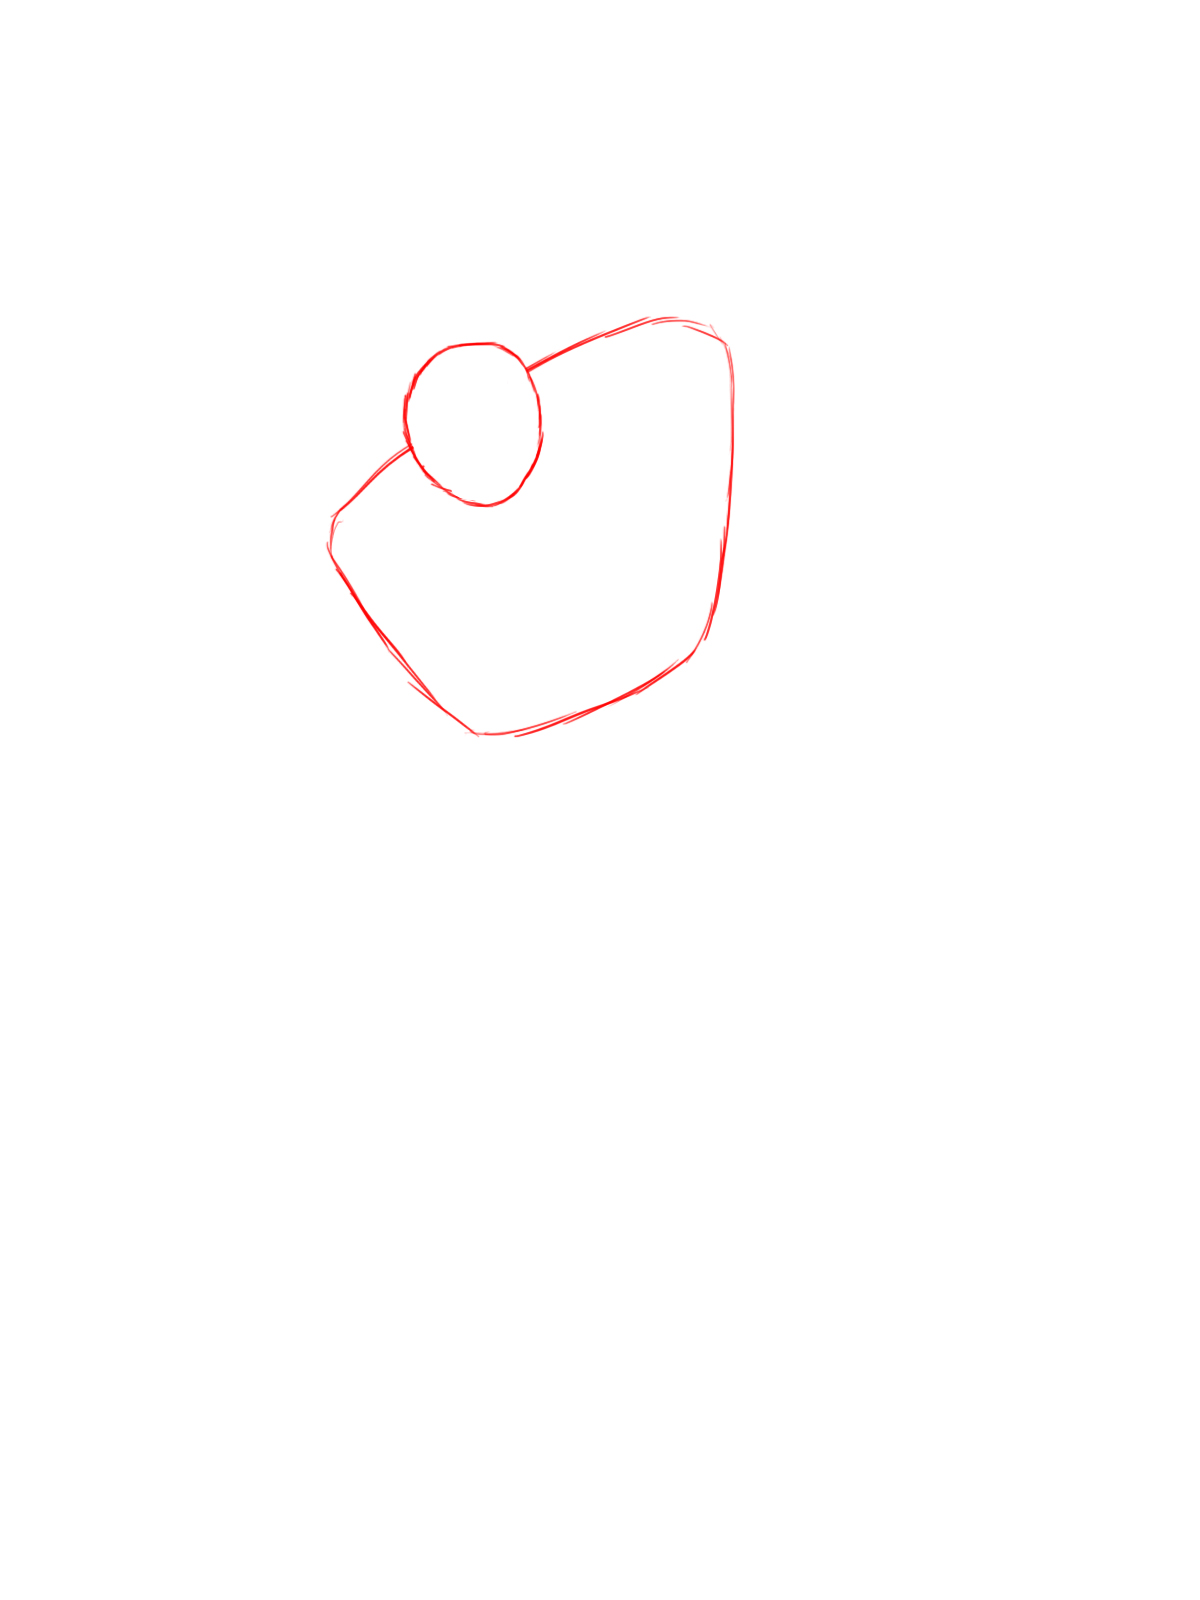 The First Step To Drawing Goku Is To Draw A Small Circle For His Head, With  A Larger Rectangle Beneath It This Will Be His Head And Chest Respectively